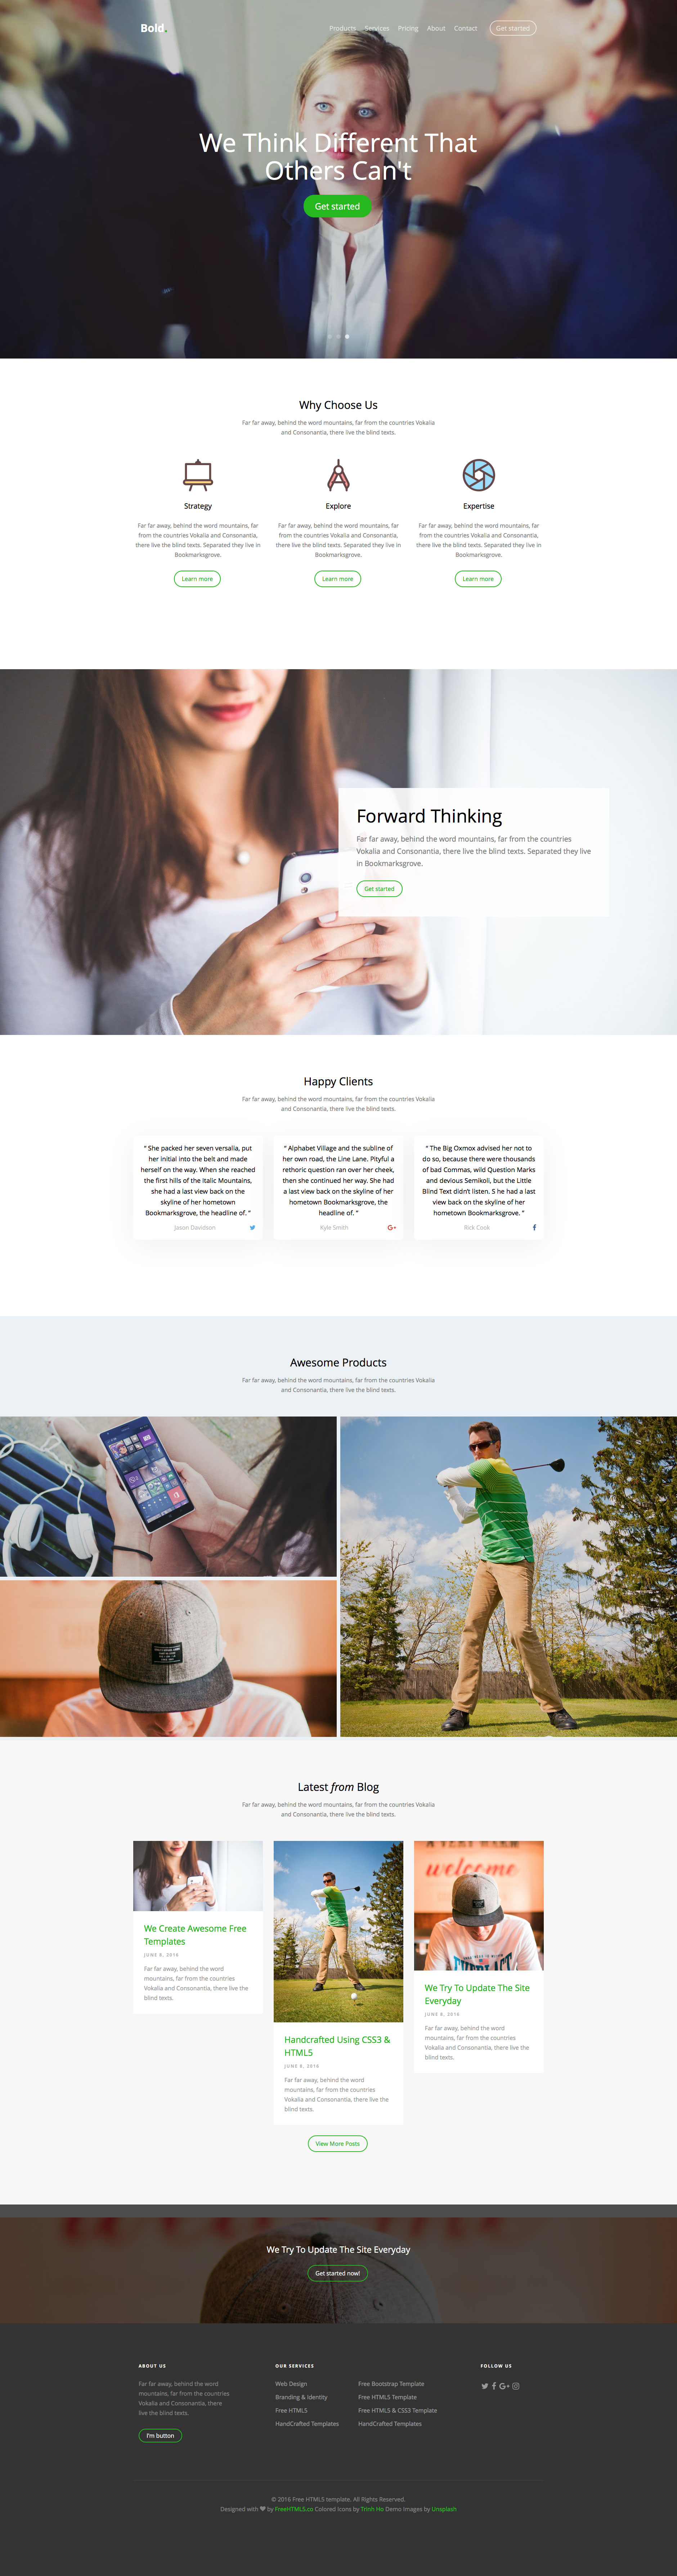 Bold is a free responsive HTML5 website template using Bootstrap 3. Perfect for any kind of business websites.The features of this template are flexslider, Bold features include animation scrolling, pricing table and many others.